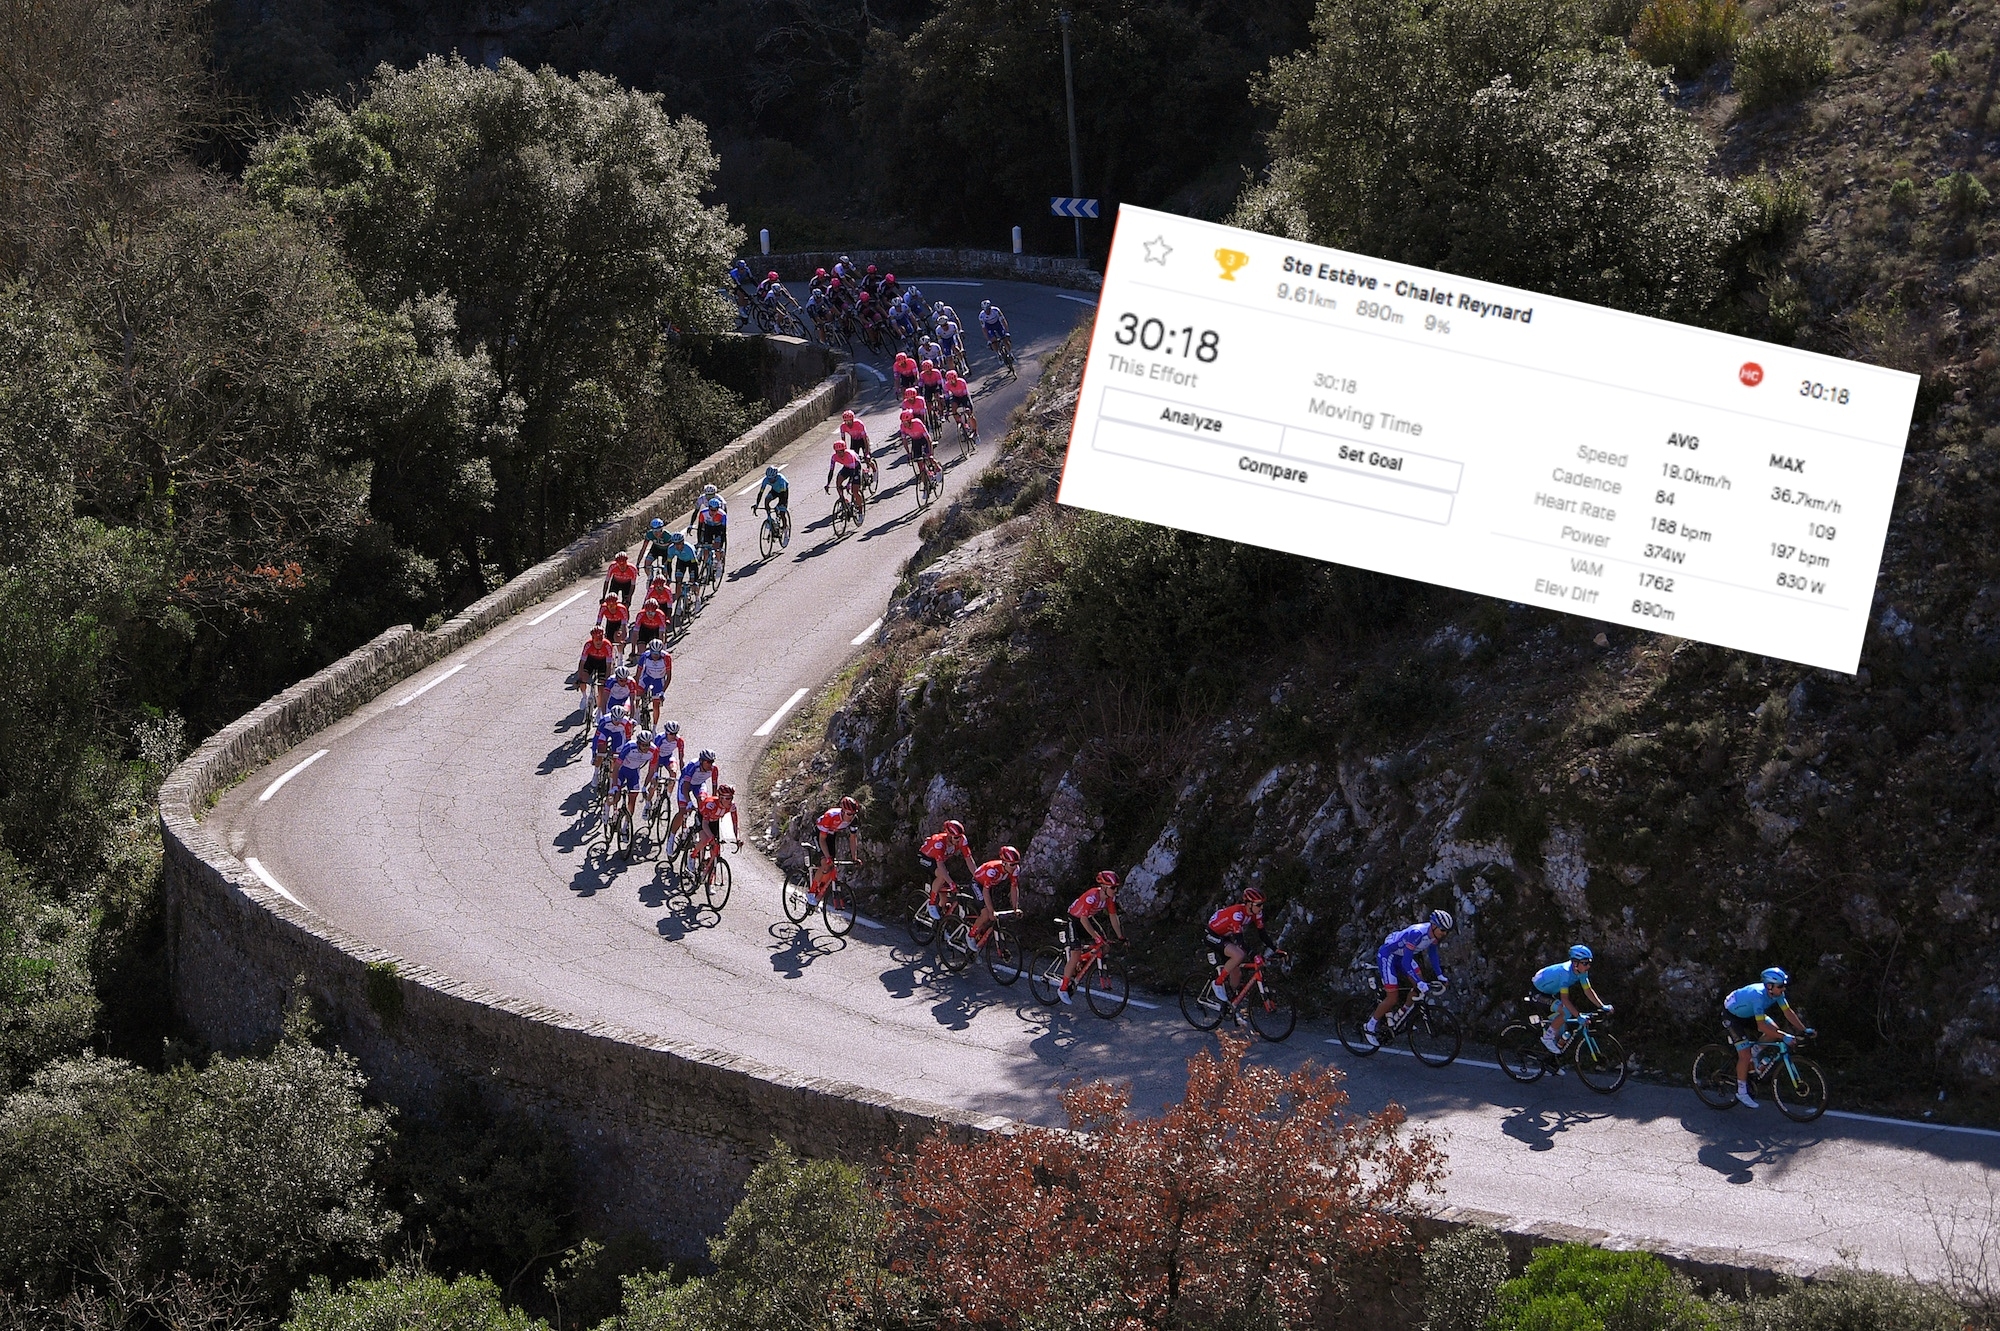 Over 400 watts for 30 minutes – Strava stats reveal formidable rides on Mont Ventoux - Cycling Weekly